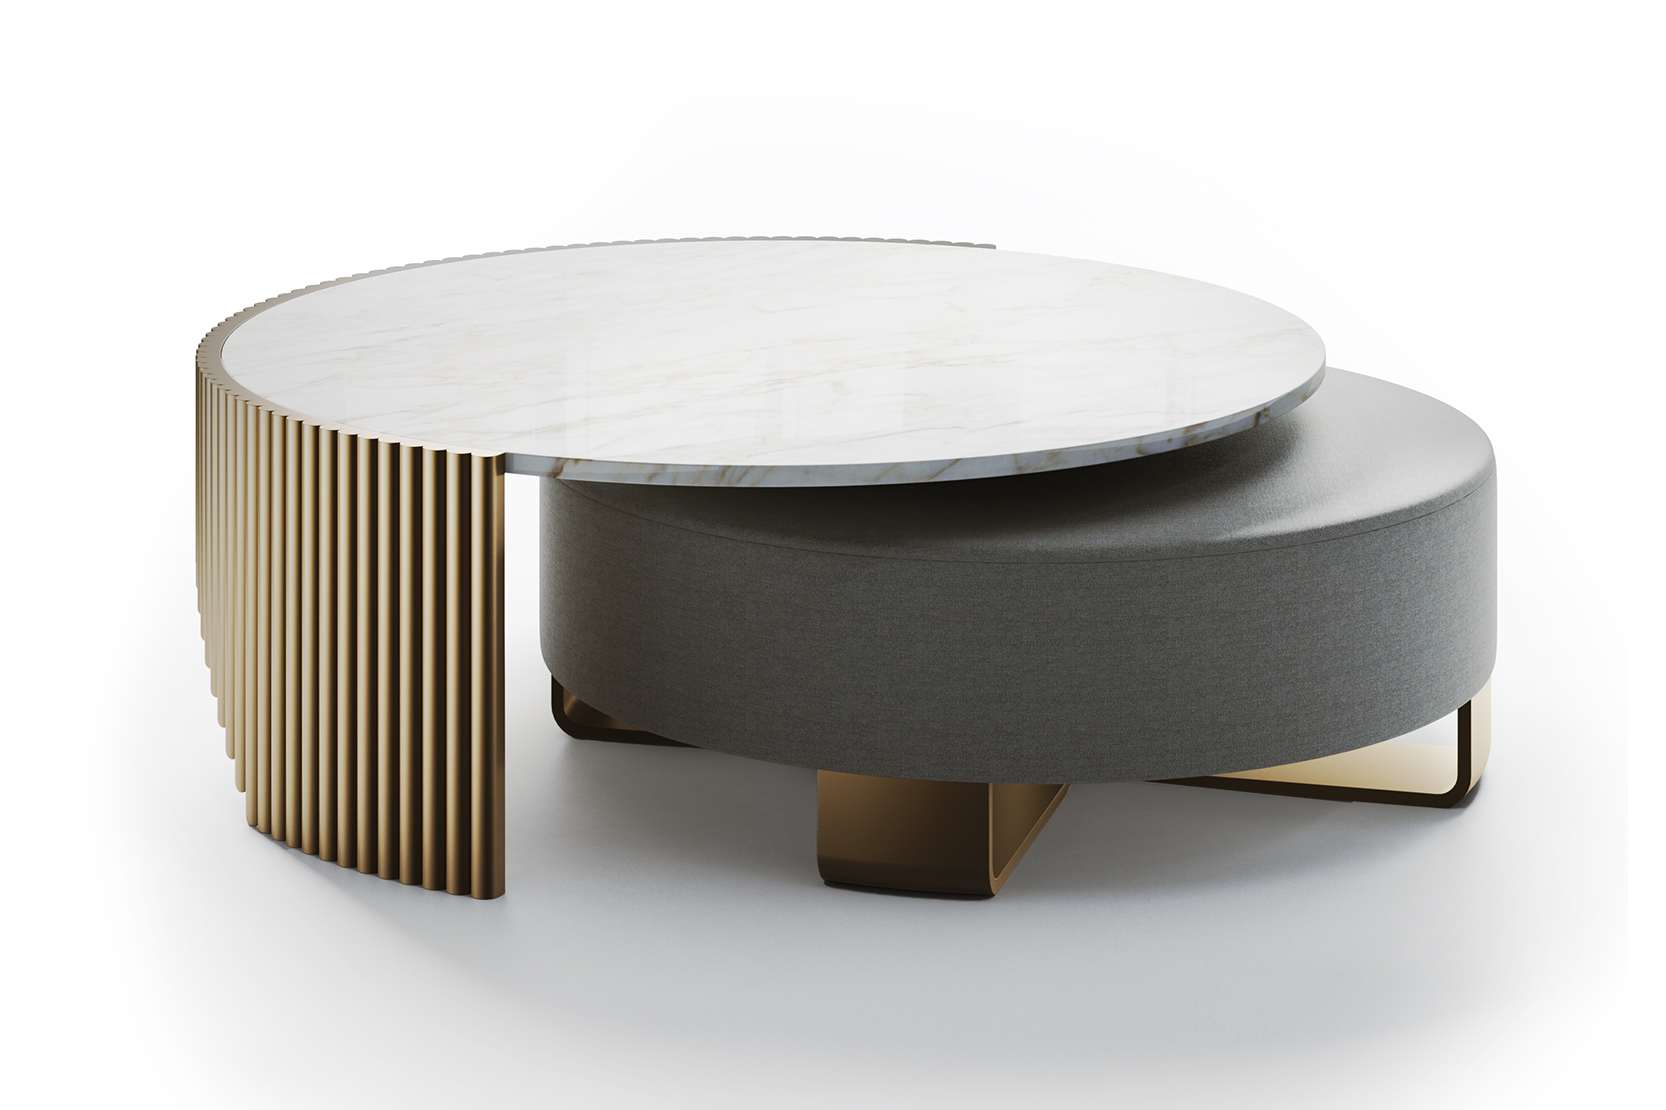 cy tosca I cocktail table